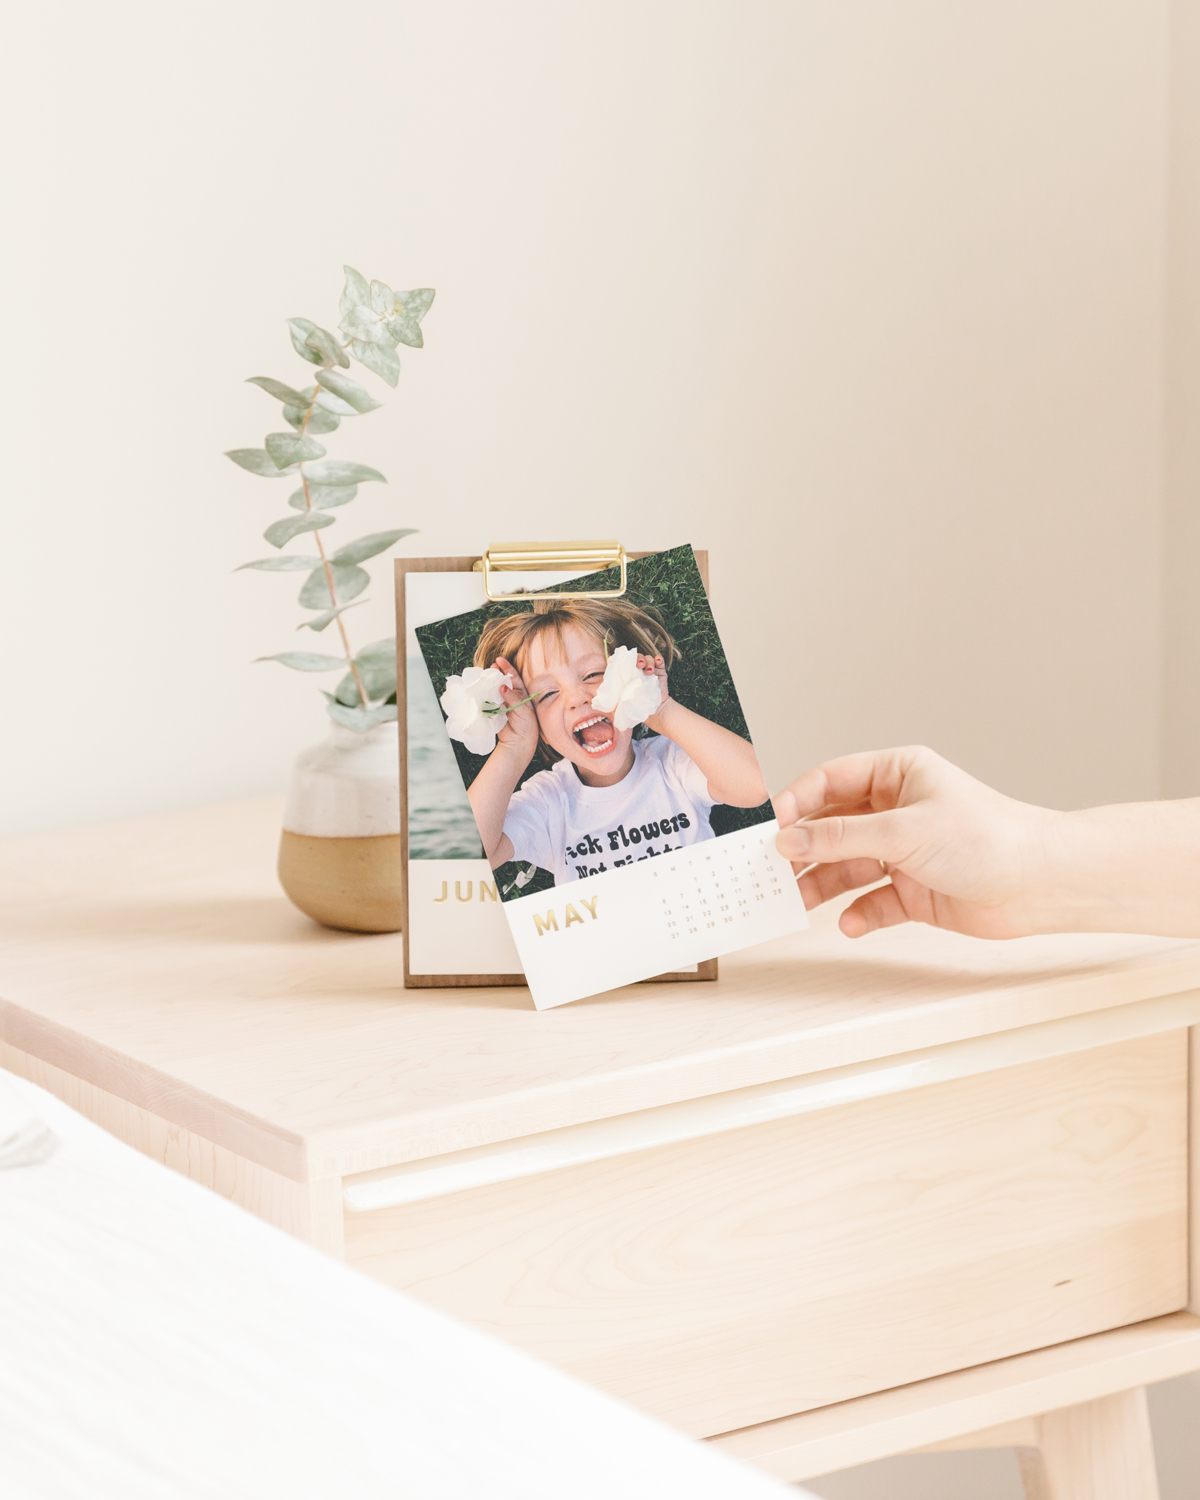 Desktop calendar on nightstand featuring playful photo of young child holding flowers